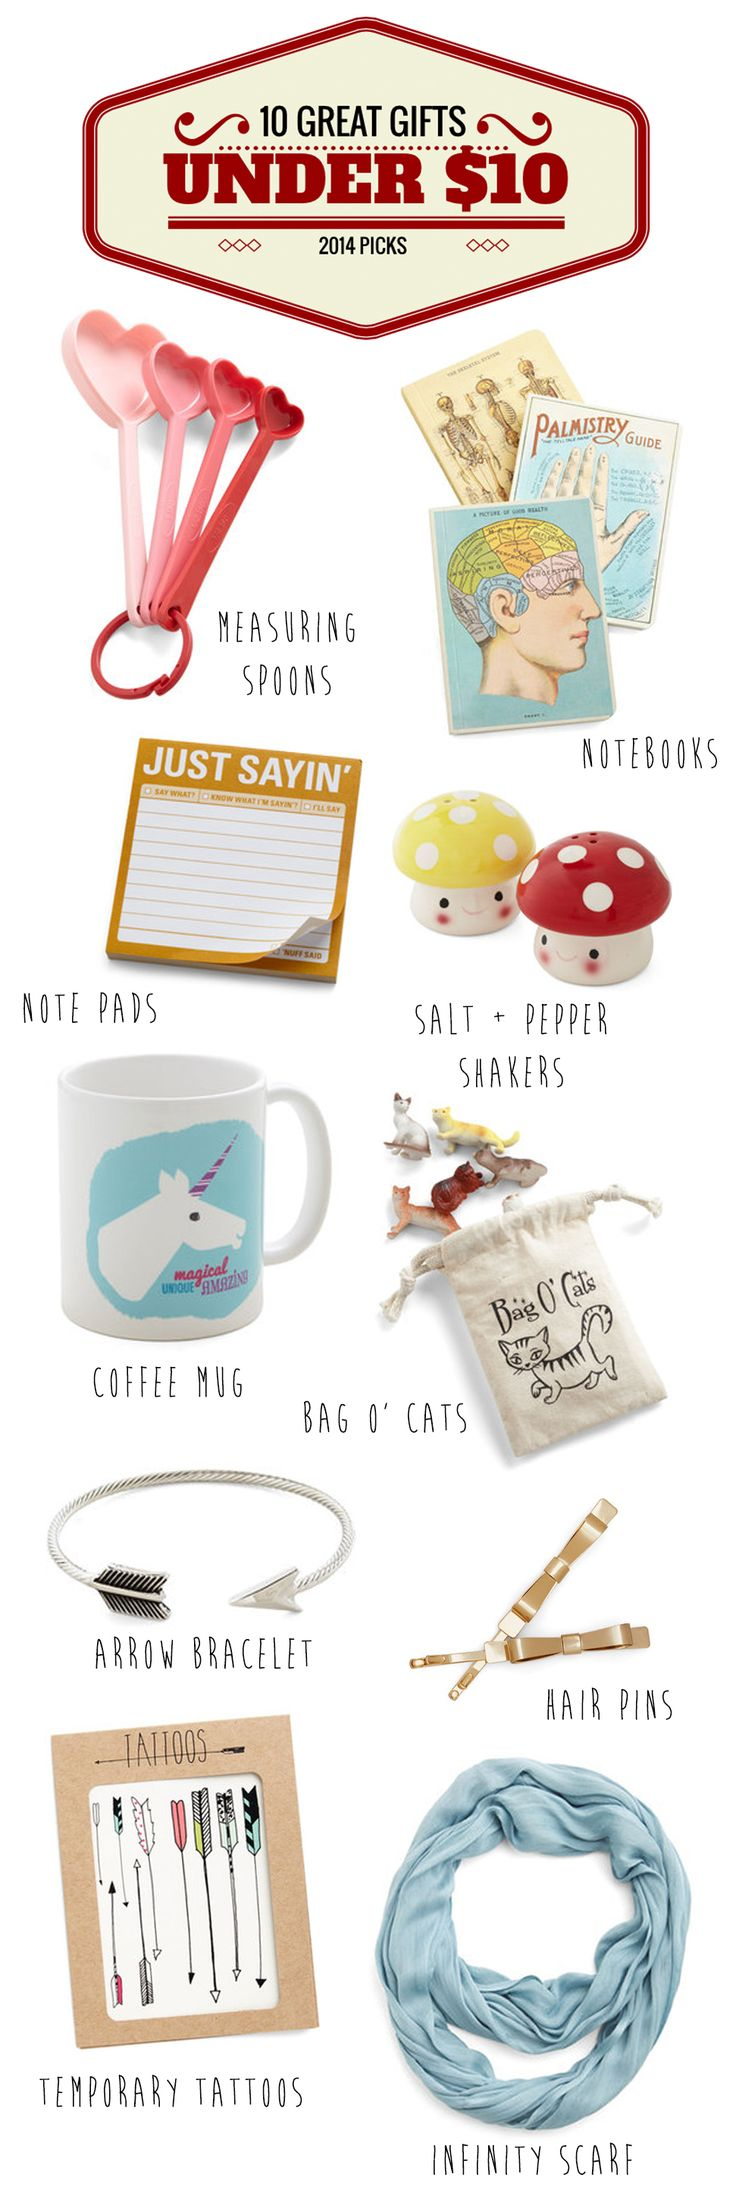 10 Gift Ideas Under 10.00 lots of fun gifts for co